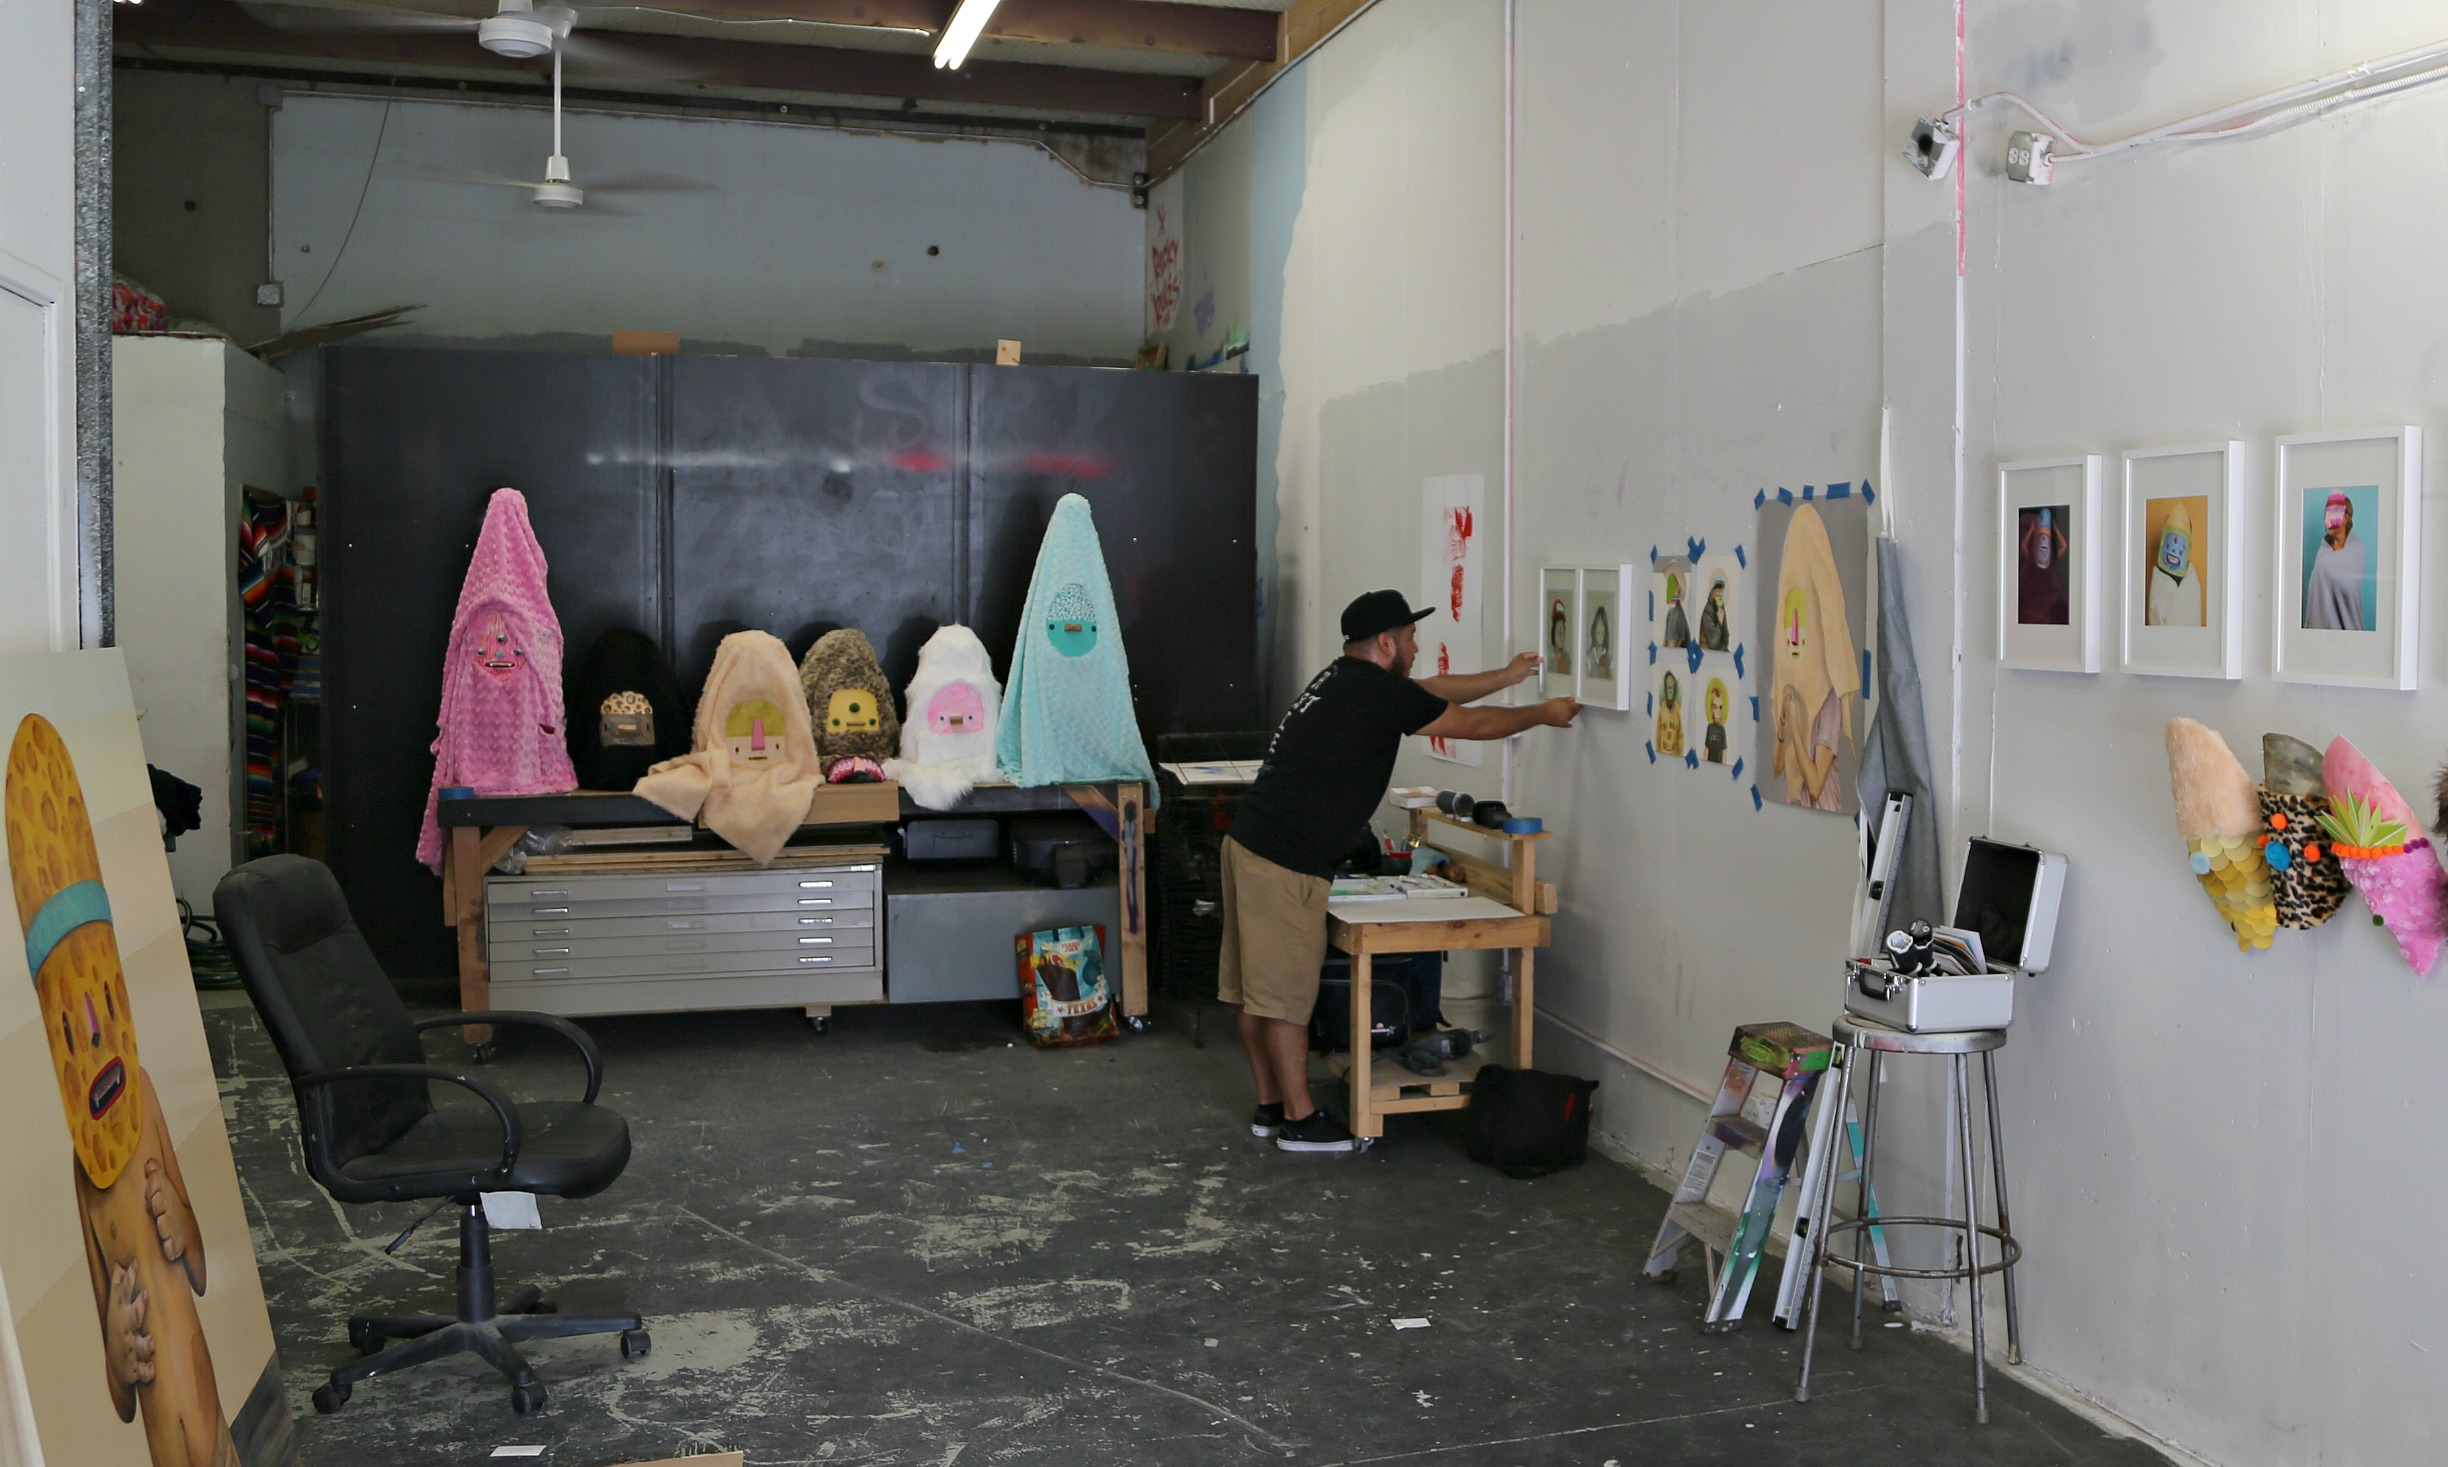 carlos-in-the-studio-small